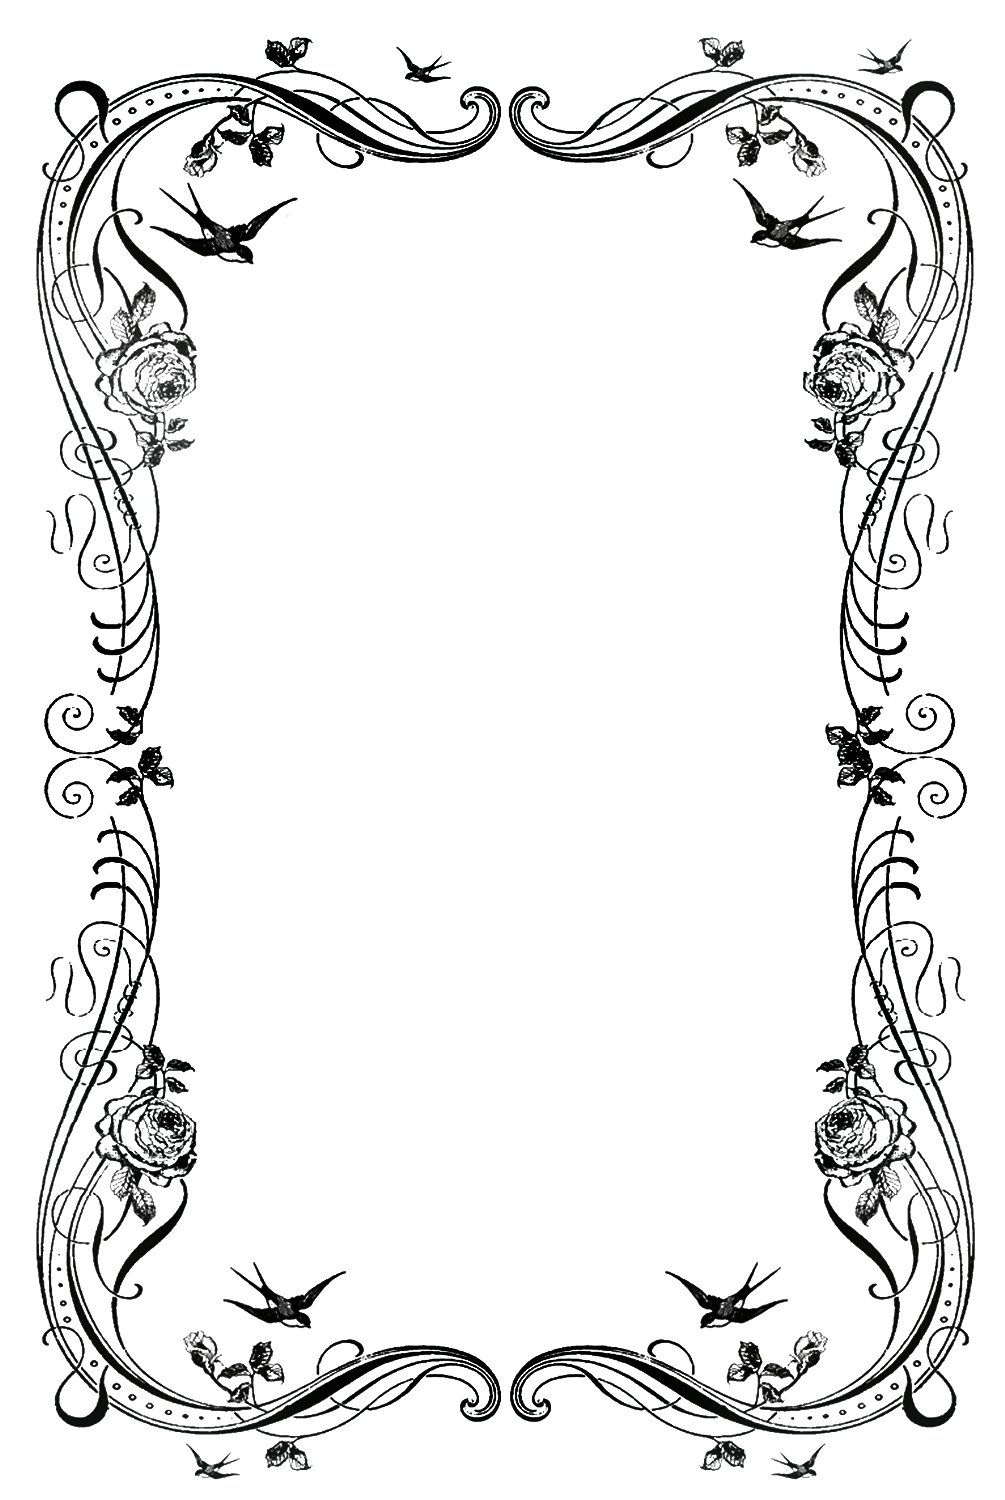 hight resolution of 19 decorative border designs images free clip art borders free